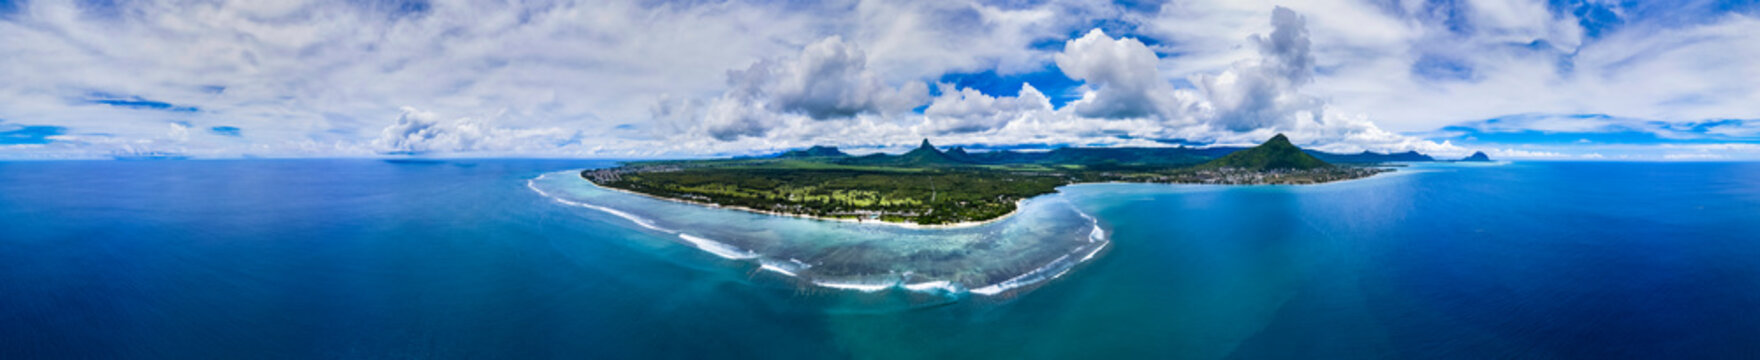 Mauritius, Black River, Tamarin, Helicopter panorama of island in Indian Ocean in summer